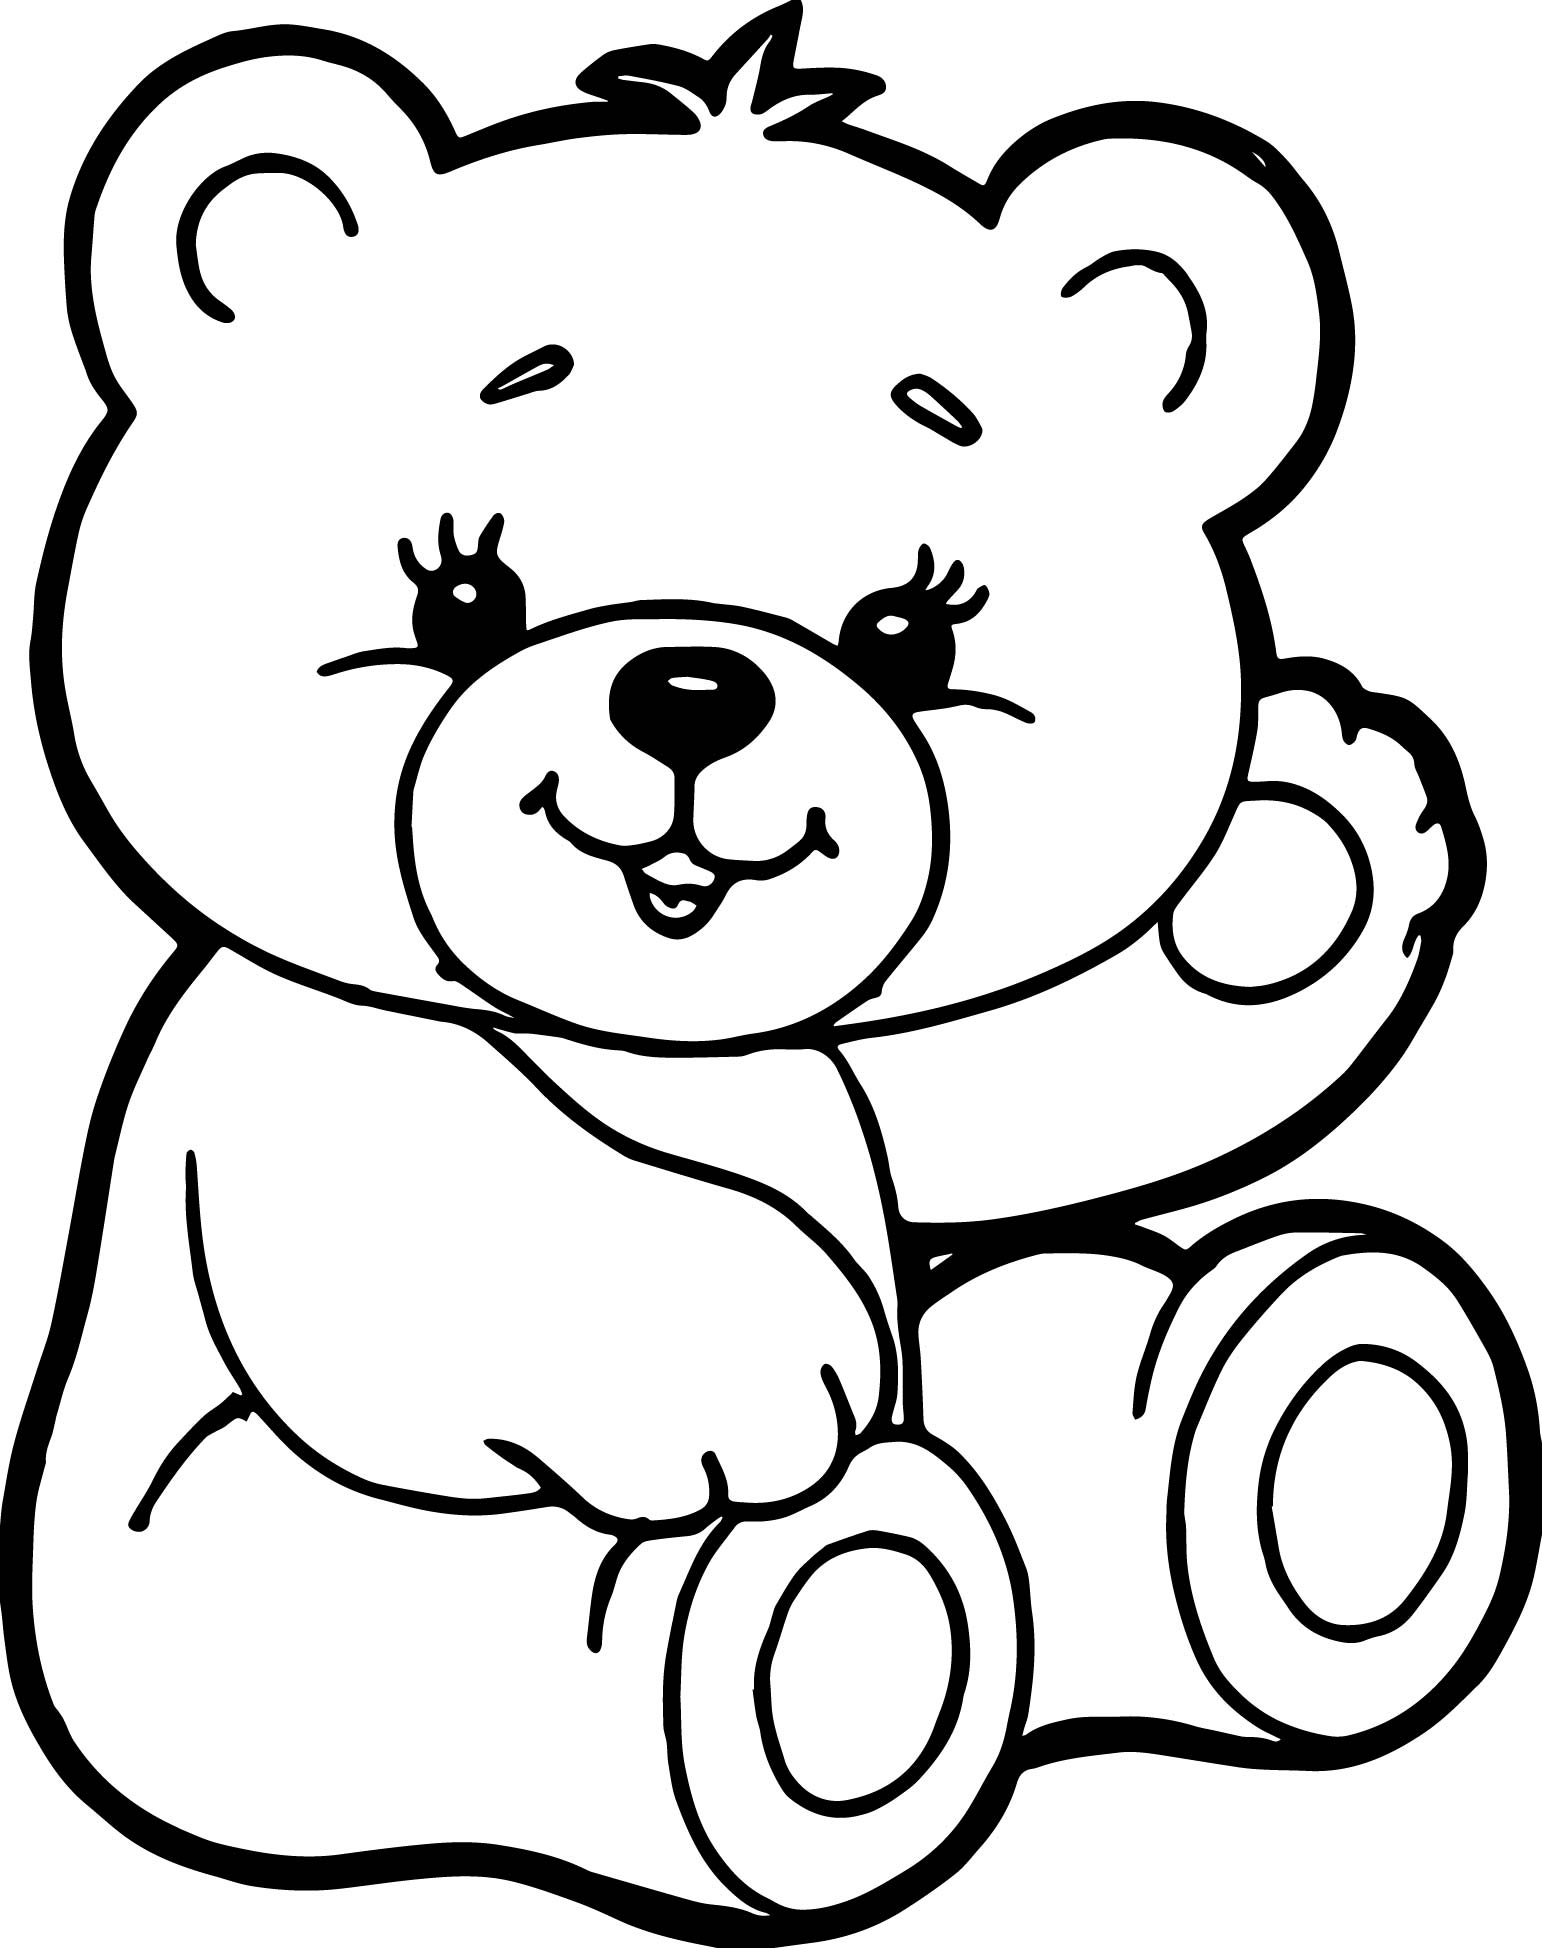 1542x1948 Bear Coloring Page Best Of Easy Bear Face Coloring Pages Logo